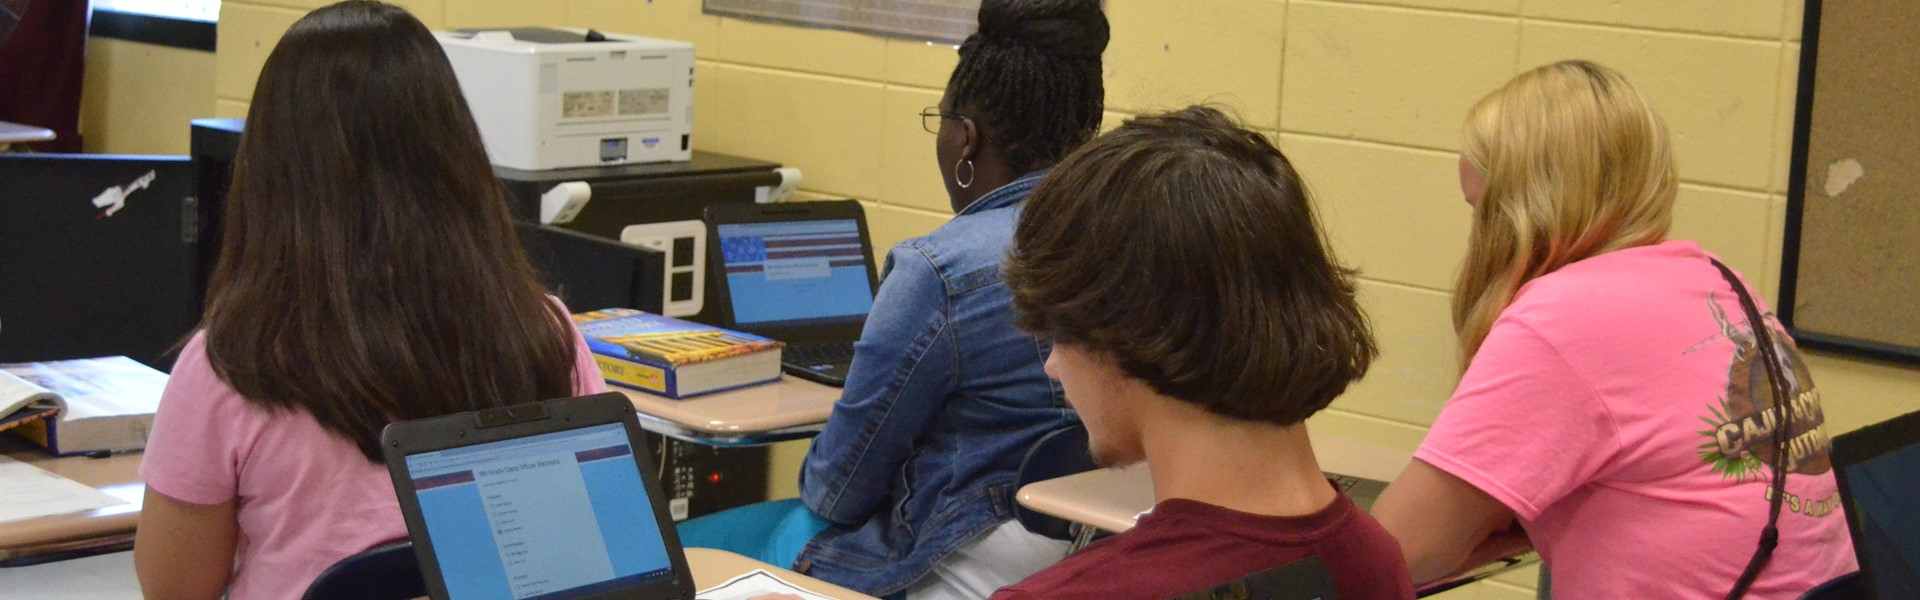 TCCHS students use technology in the classroom.